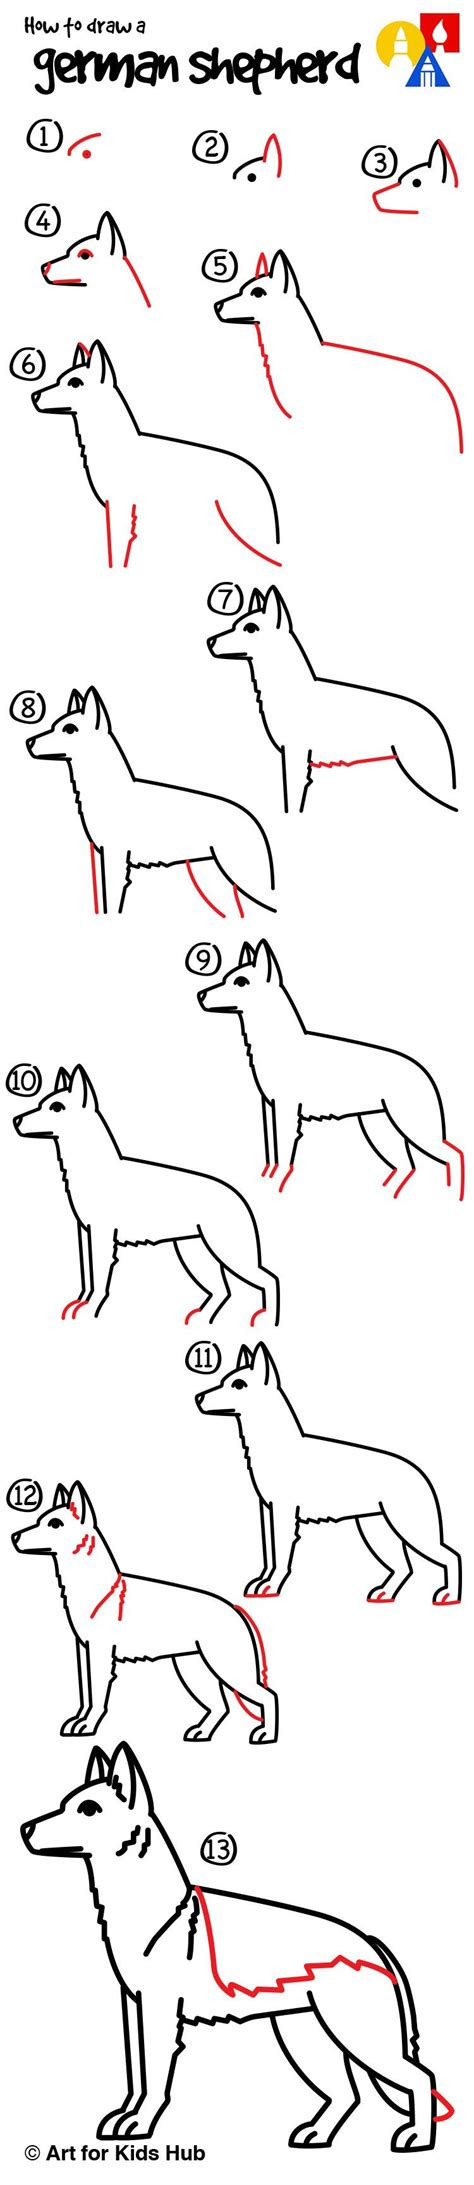 how to draw a german shepherd how to draw a german shepherd for hub german shepherds learning and